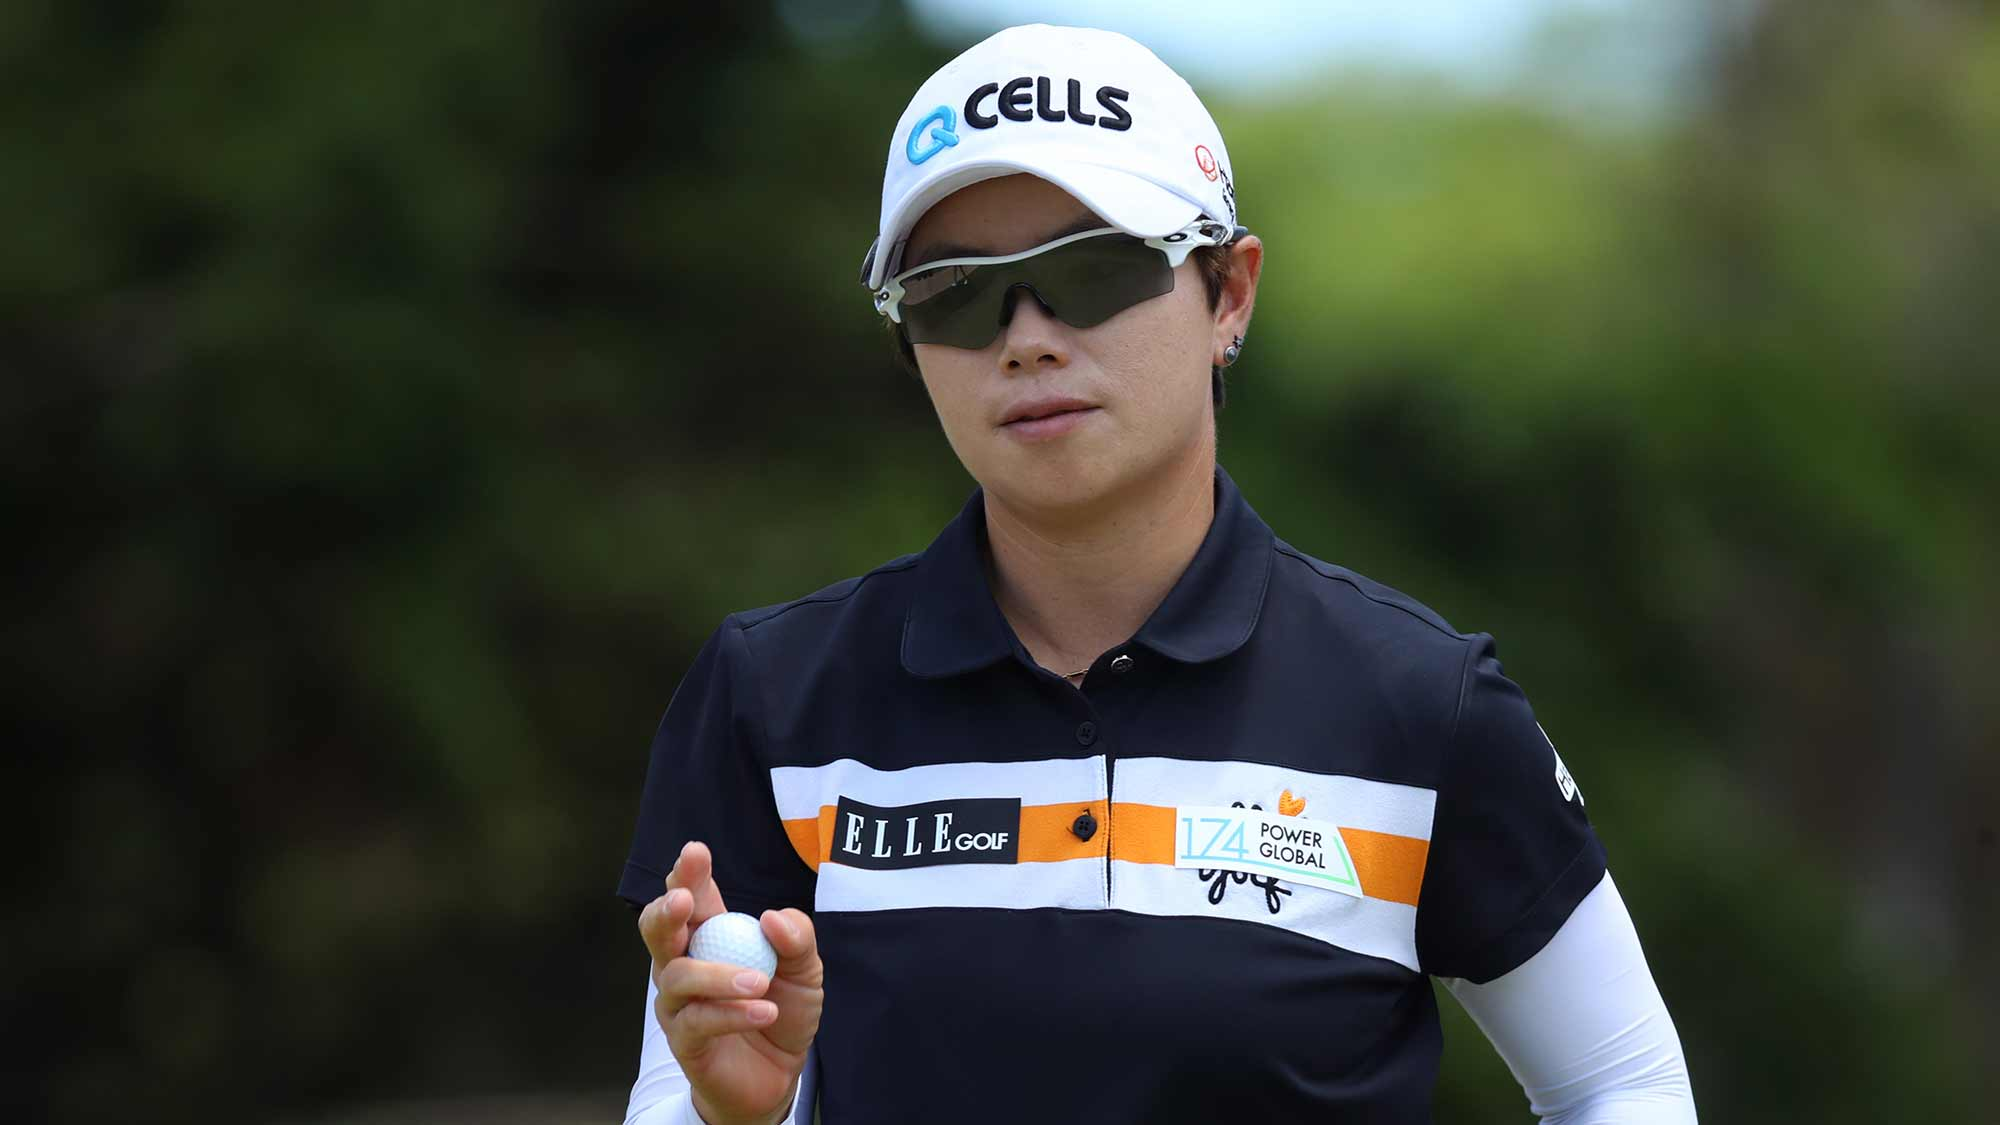 Eun-Hee Ji of South Korea reacts to a par on the fourth green during the third round of the LOTTE Championship on April 20, 2019 in Kapolei, Hawaii